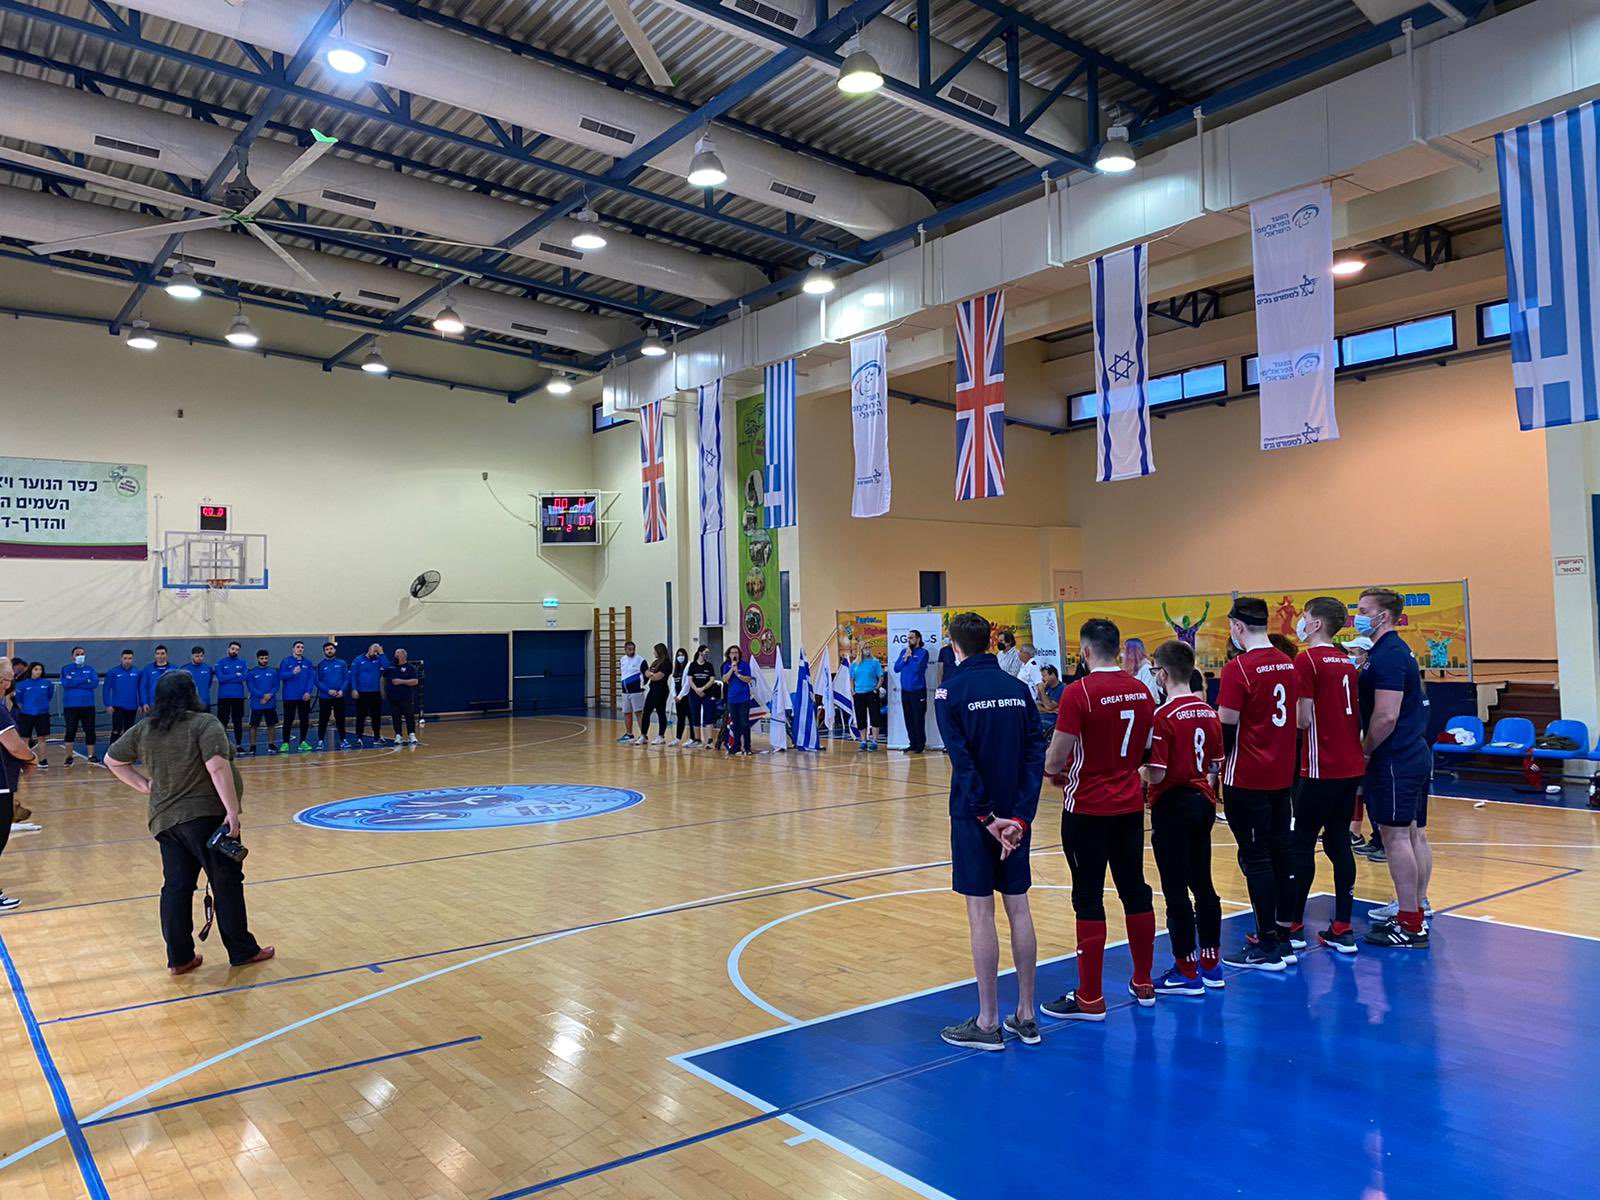 The GB team standing together on court before the match opposite the Israel men's team.